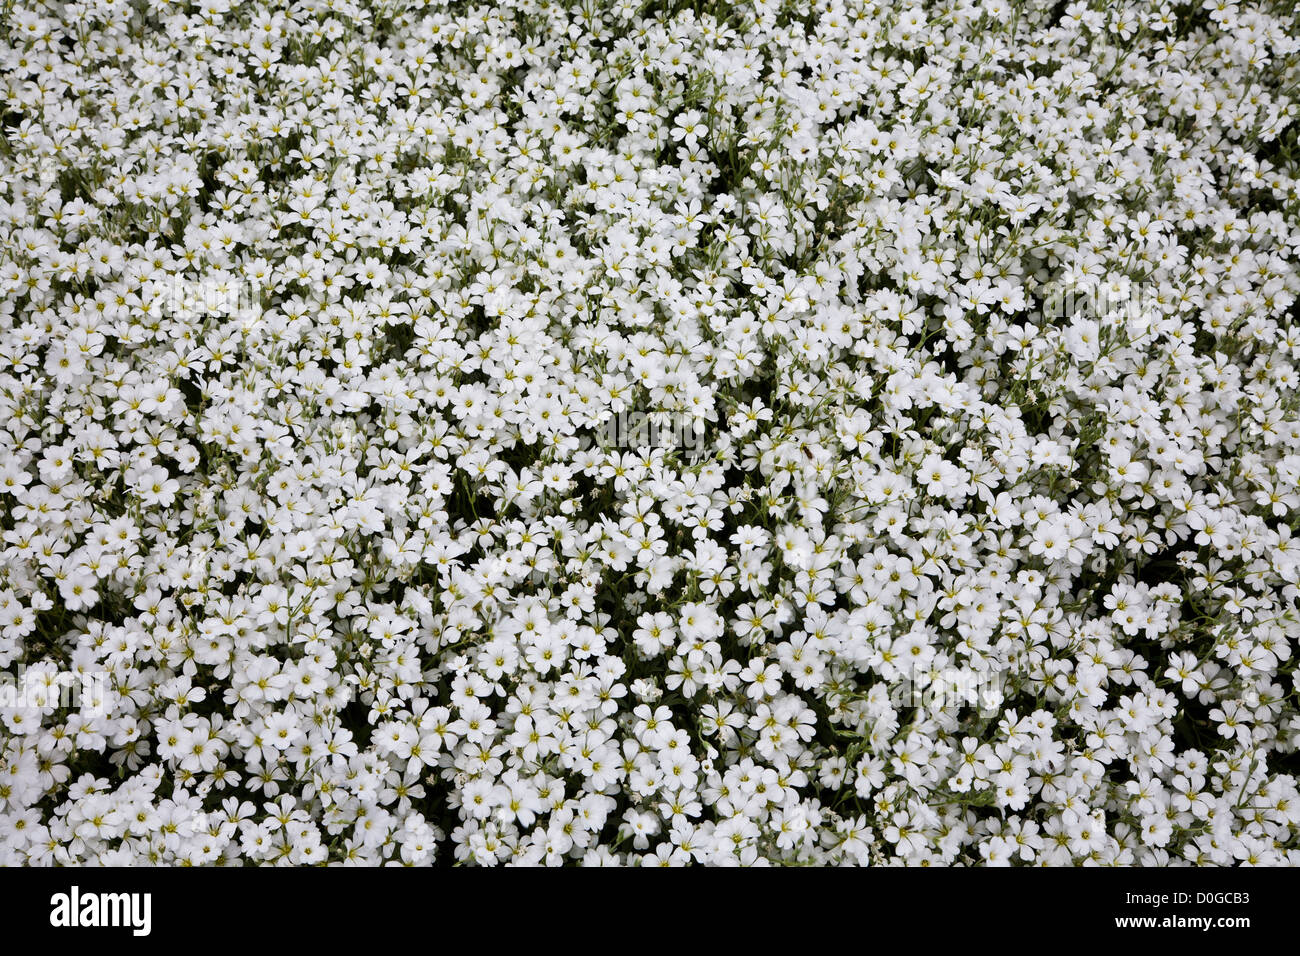 Close up of white snow in summer flowers cerastium silver carpet in close up of white snow in summer flowers cerastium silver carpet in a garden wallpaper concept lancaster county pennsylvania usa mightylinksfo